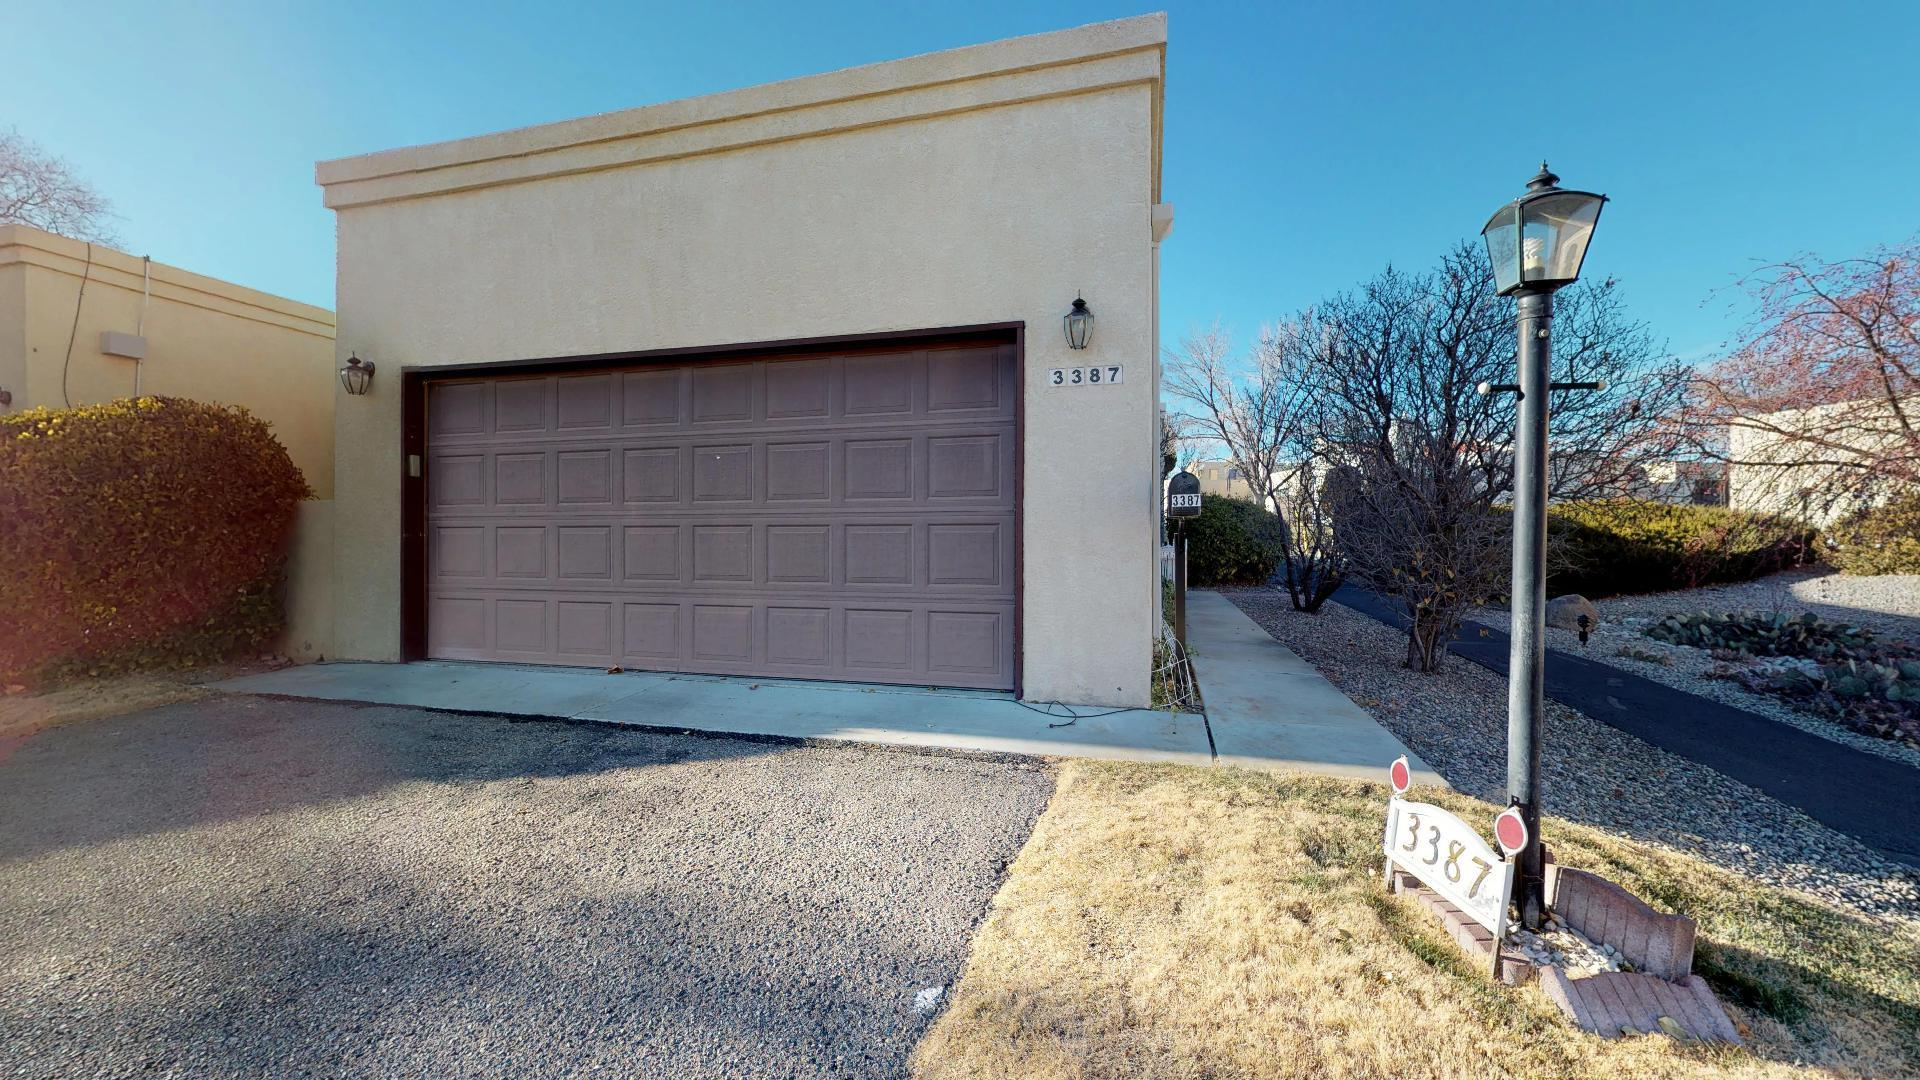 3387 SE Esplanade Place, one of homes for sale in Rio Rancho